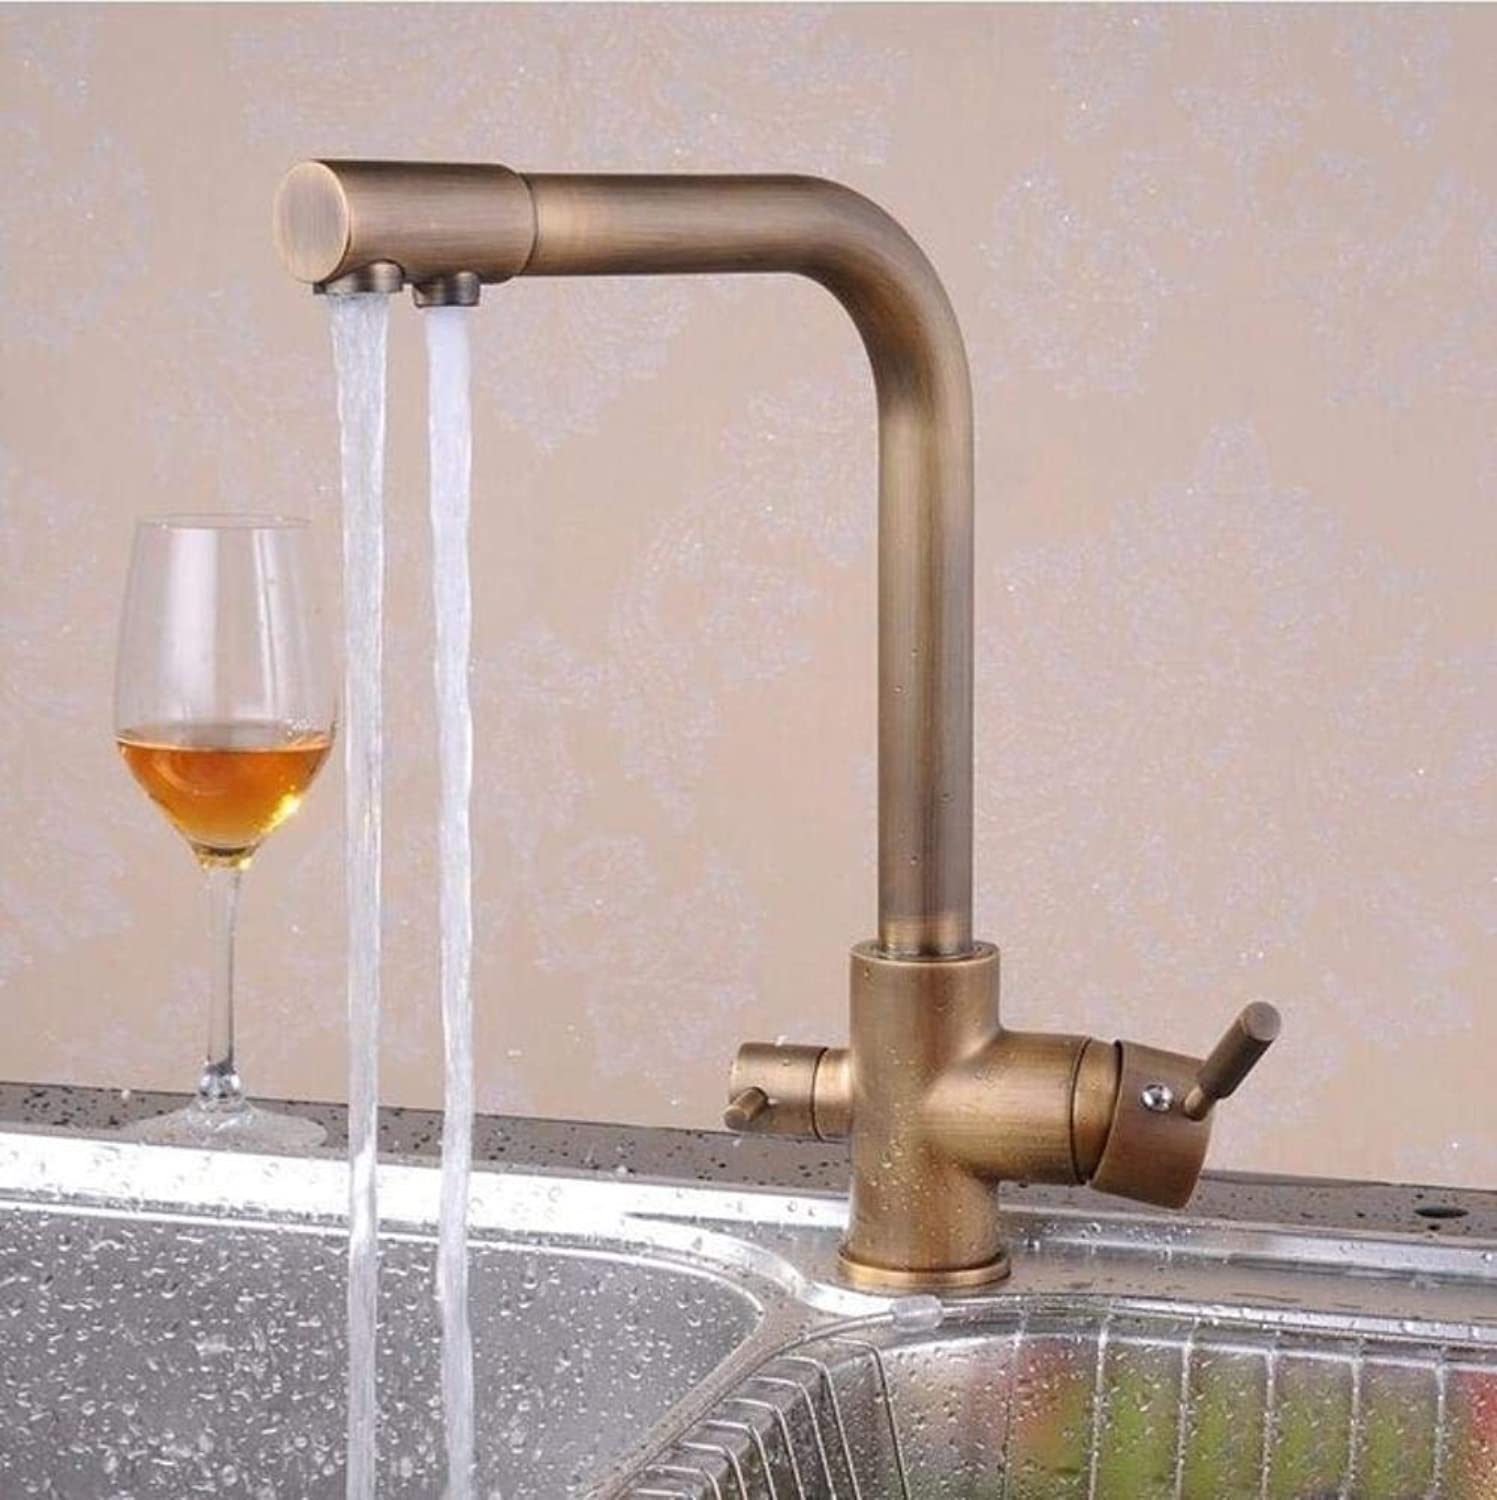 Kai&Guo 3 ways kitchen sink faucet of hot cold filter kitchen water mixer tap with chrome kitchen filter tap,Red